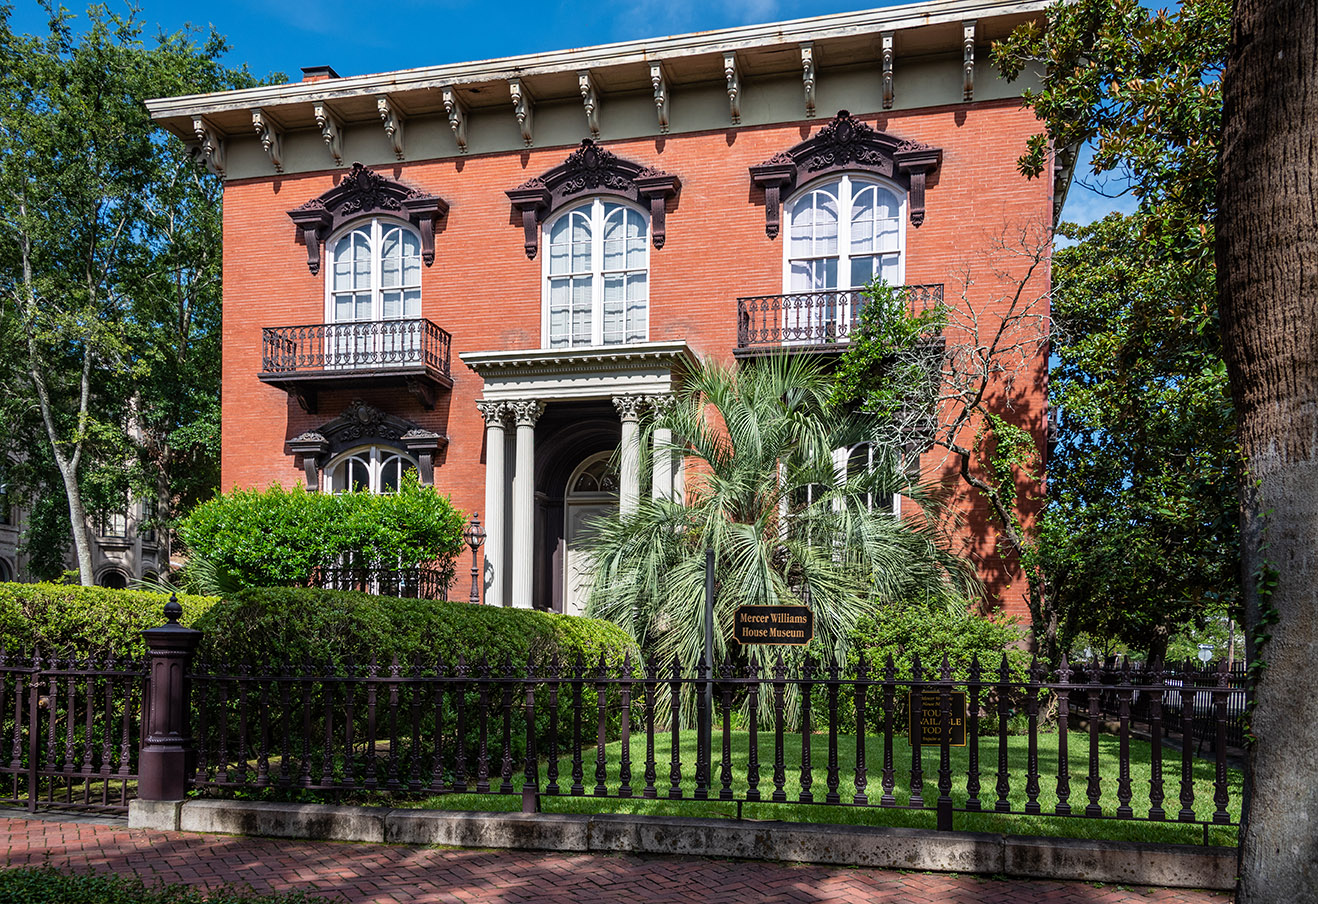 Mercer Williams house - things to do in Savannah